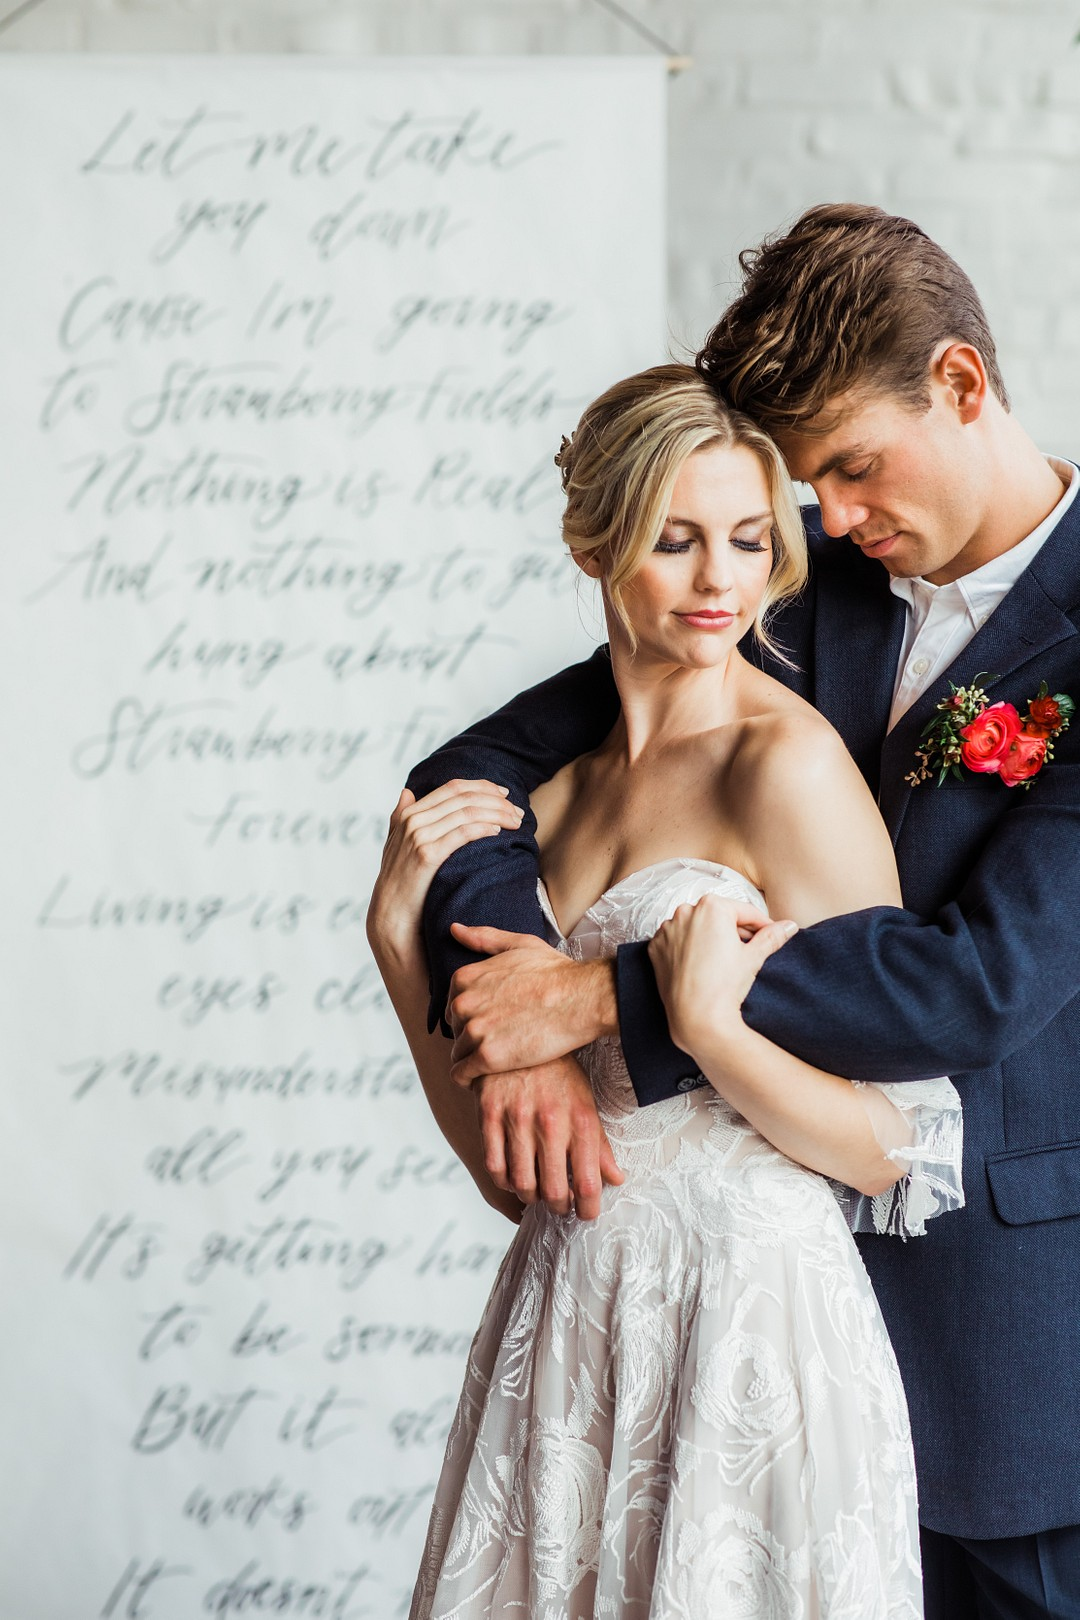 newlywed couple standing in front of a handwritten backdrop